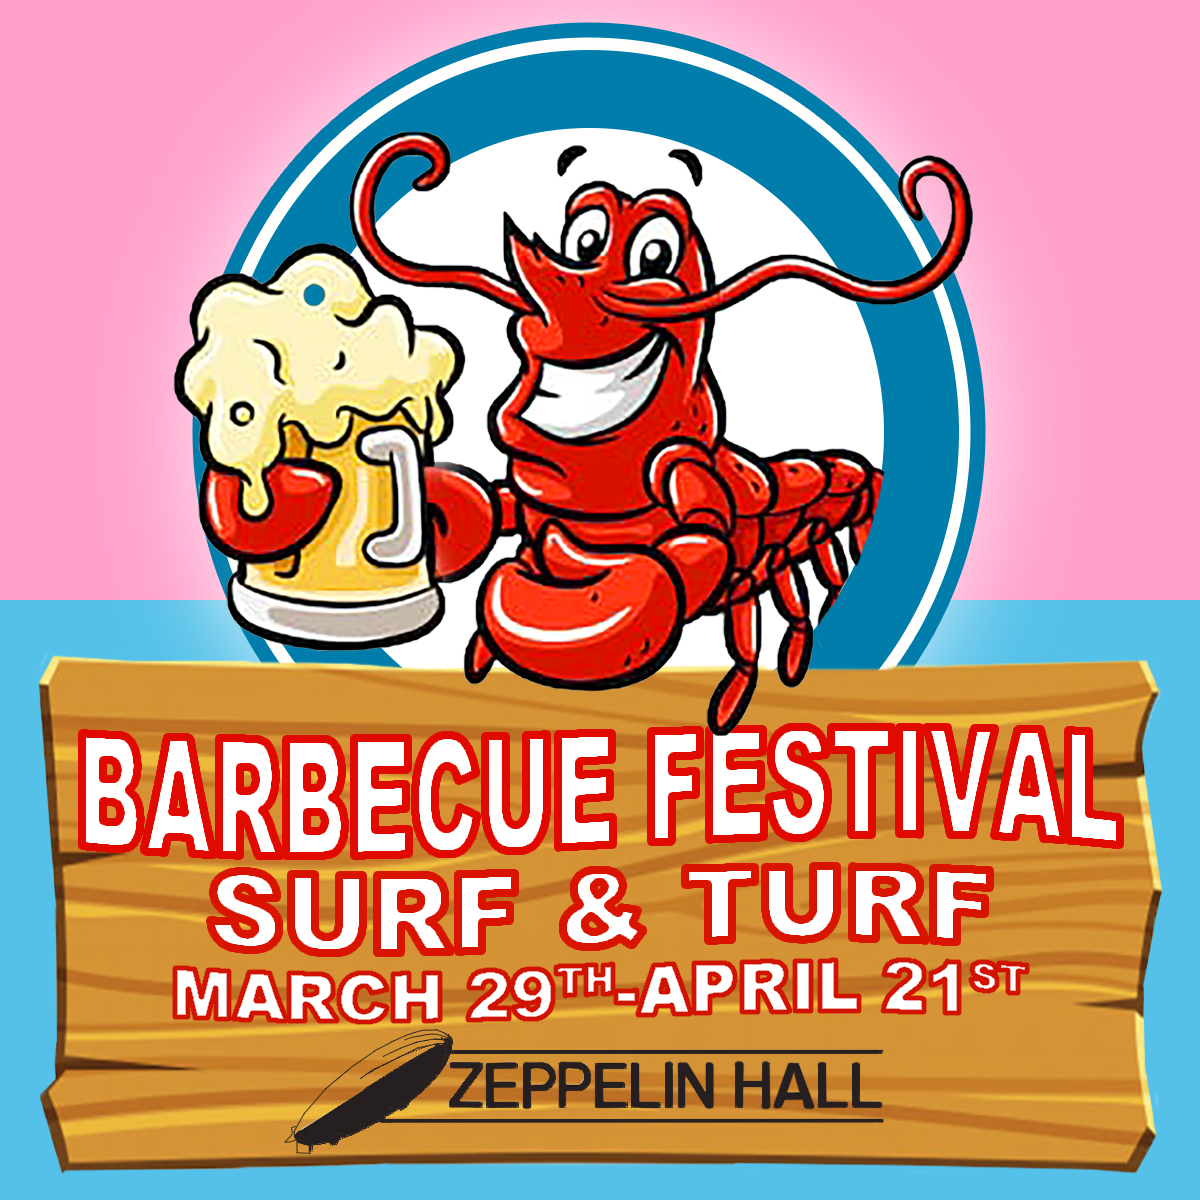 BBQ Festival – Surf and Turf